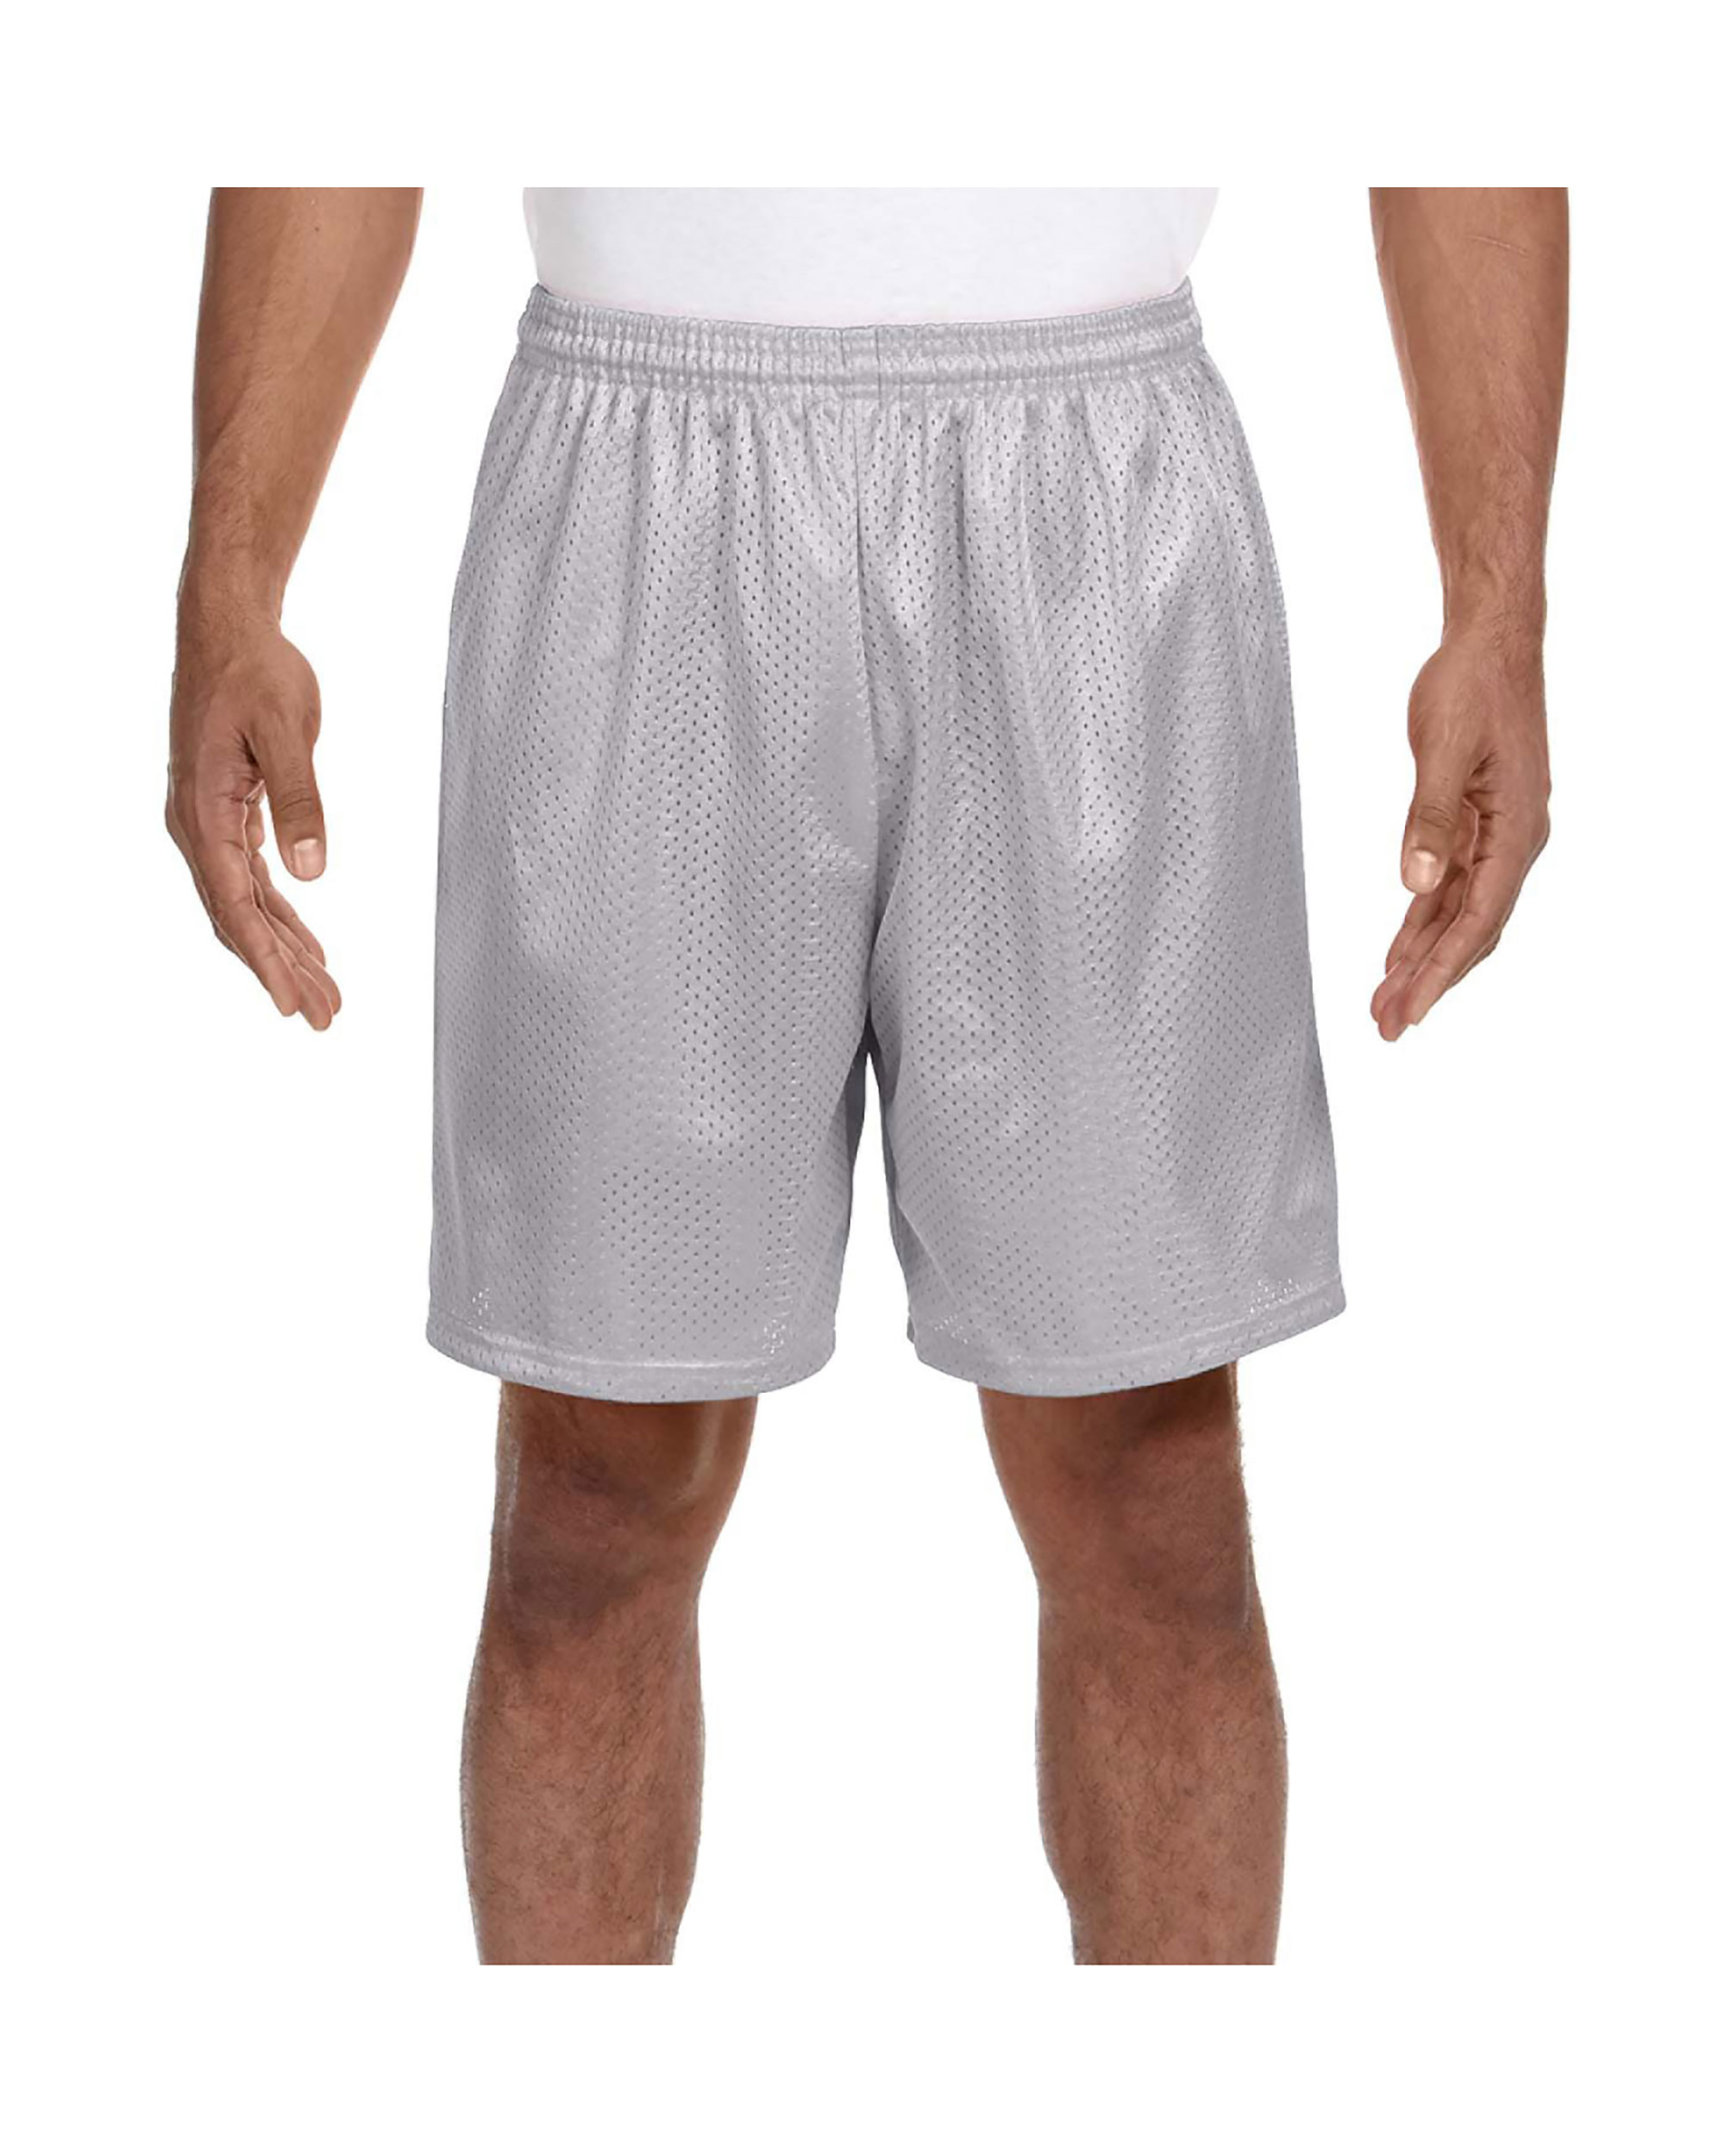 A4 Men's Comfort 7 inch Lined Tricot Mesh Wicking Short, Style N5293